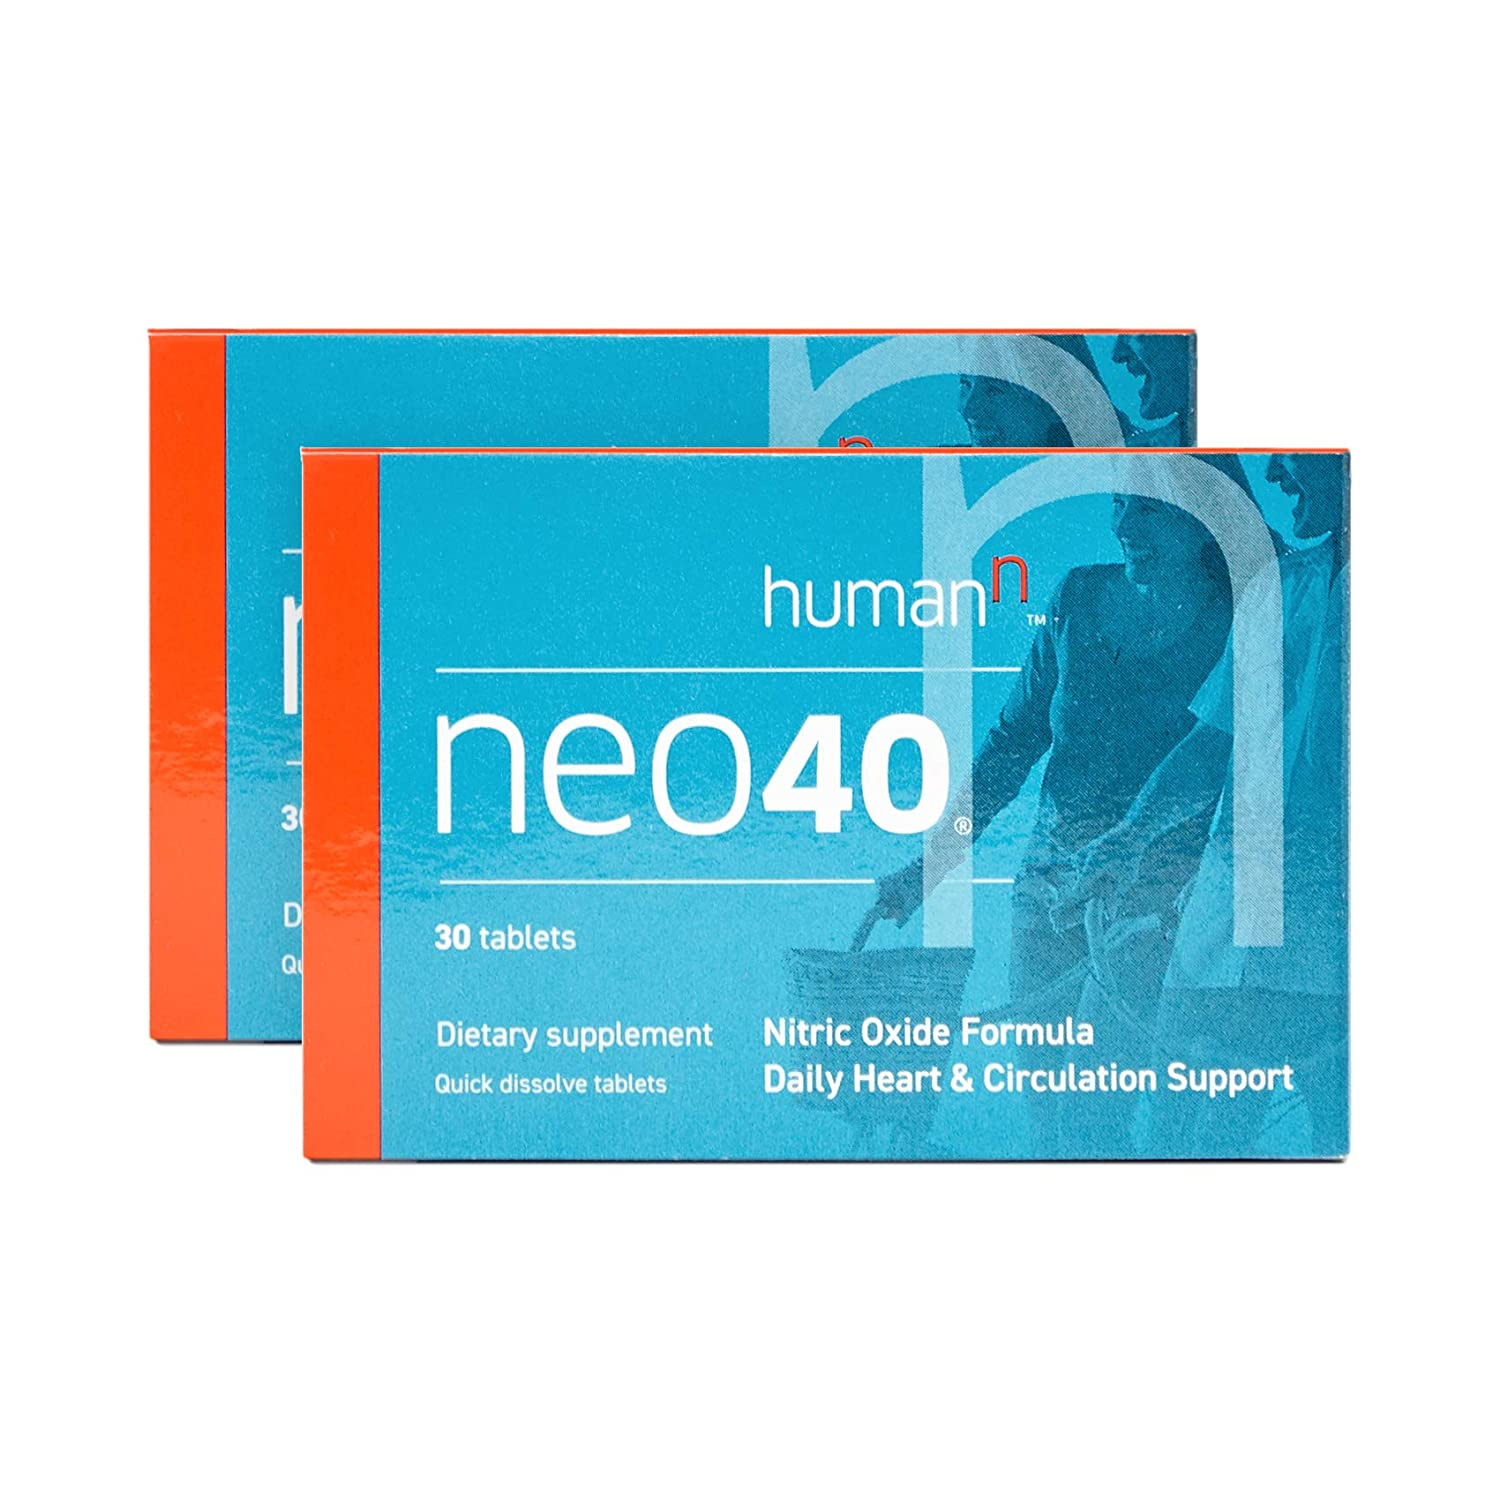 HumanN Neo40 Daily Heart and Circulation Support Nitric Oxide Boosting Supplement 30 Tablets, 2-Pack